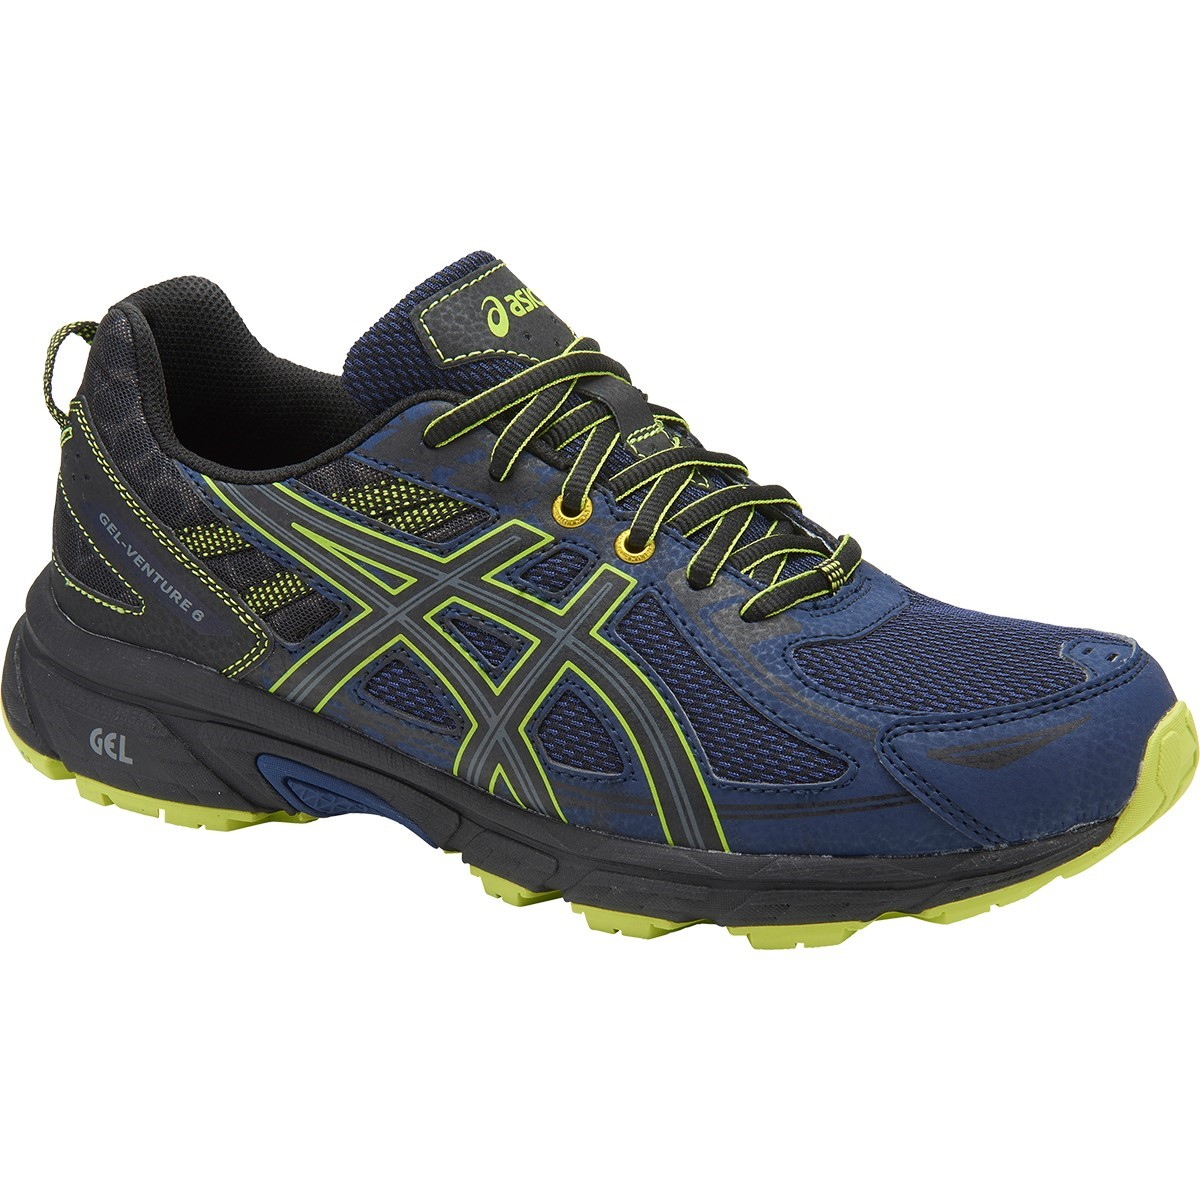 Asics Gel Venture 6 - Mens Trail Running Shoes - Indigo